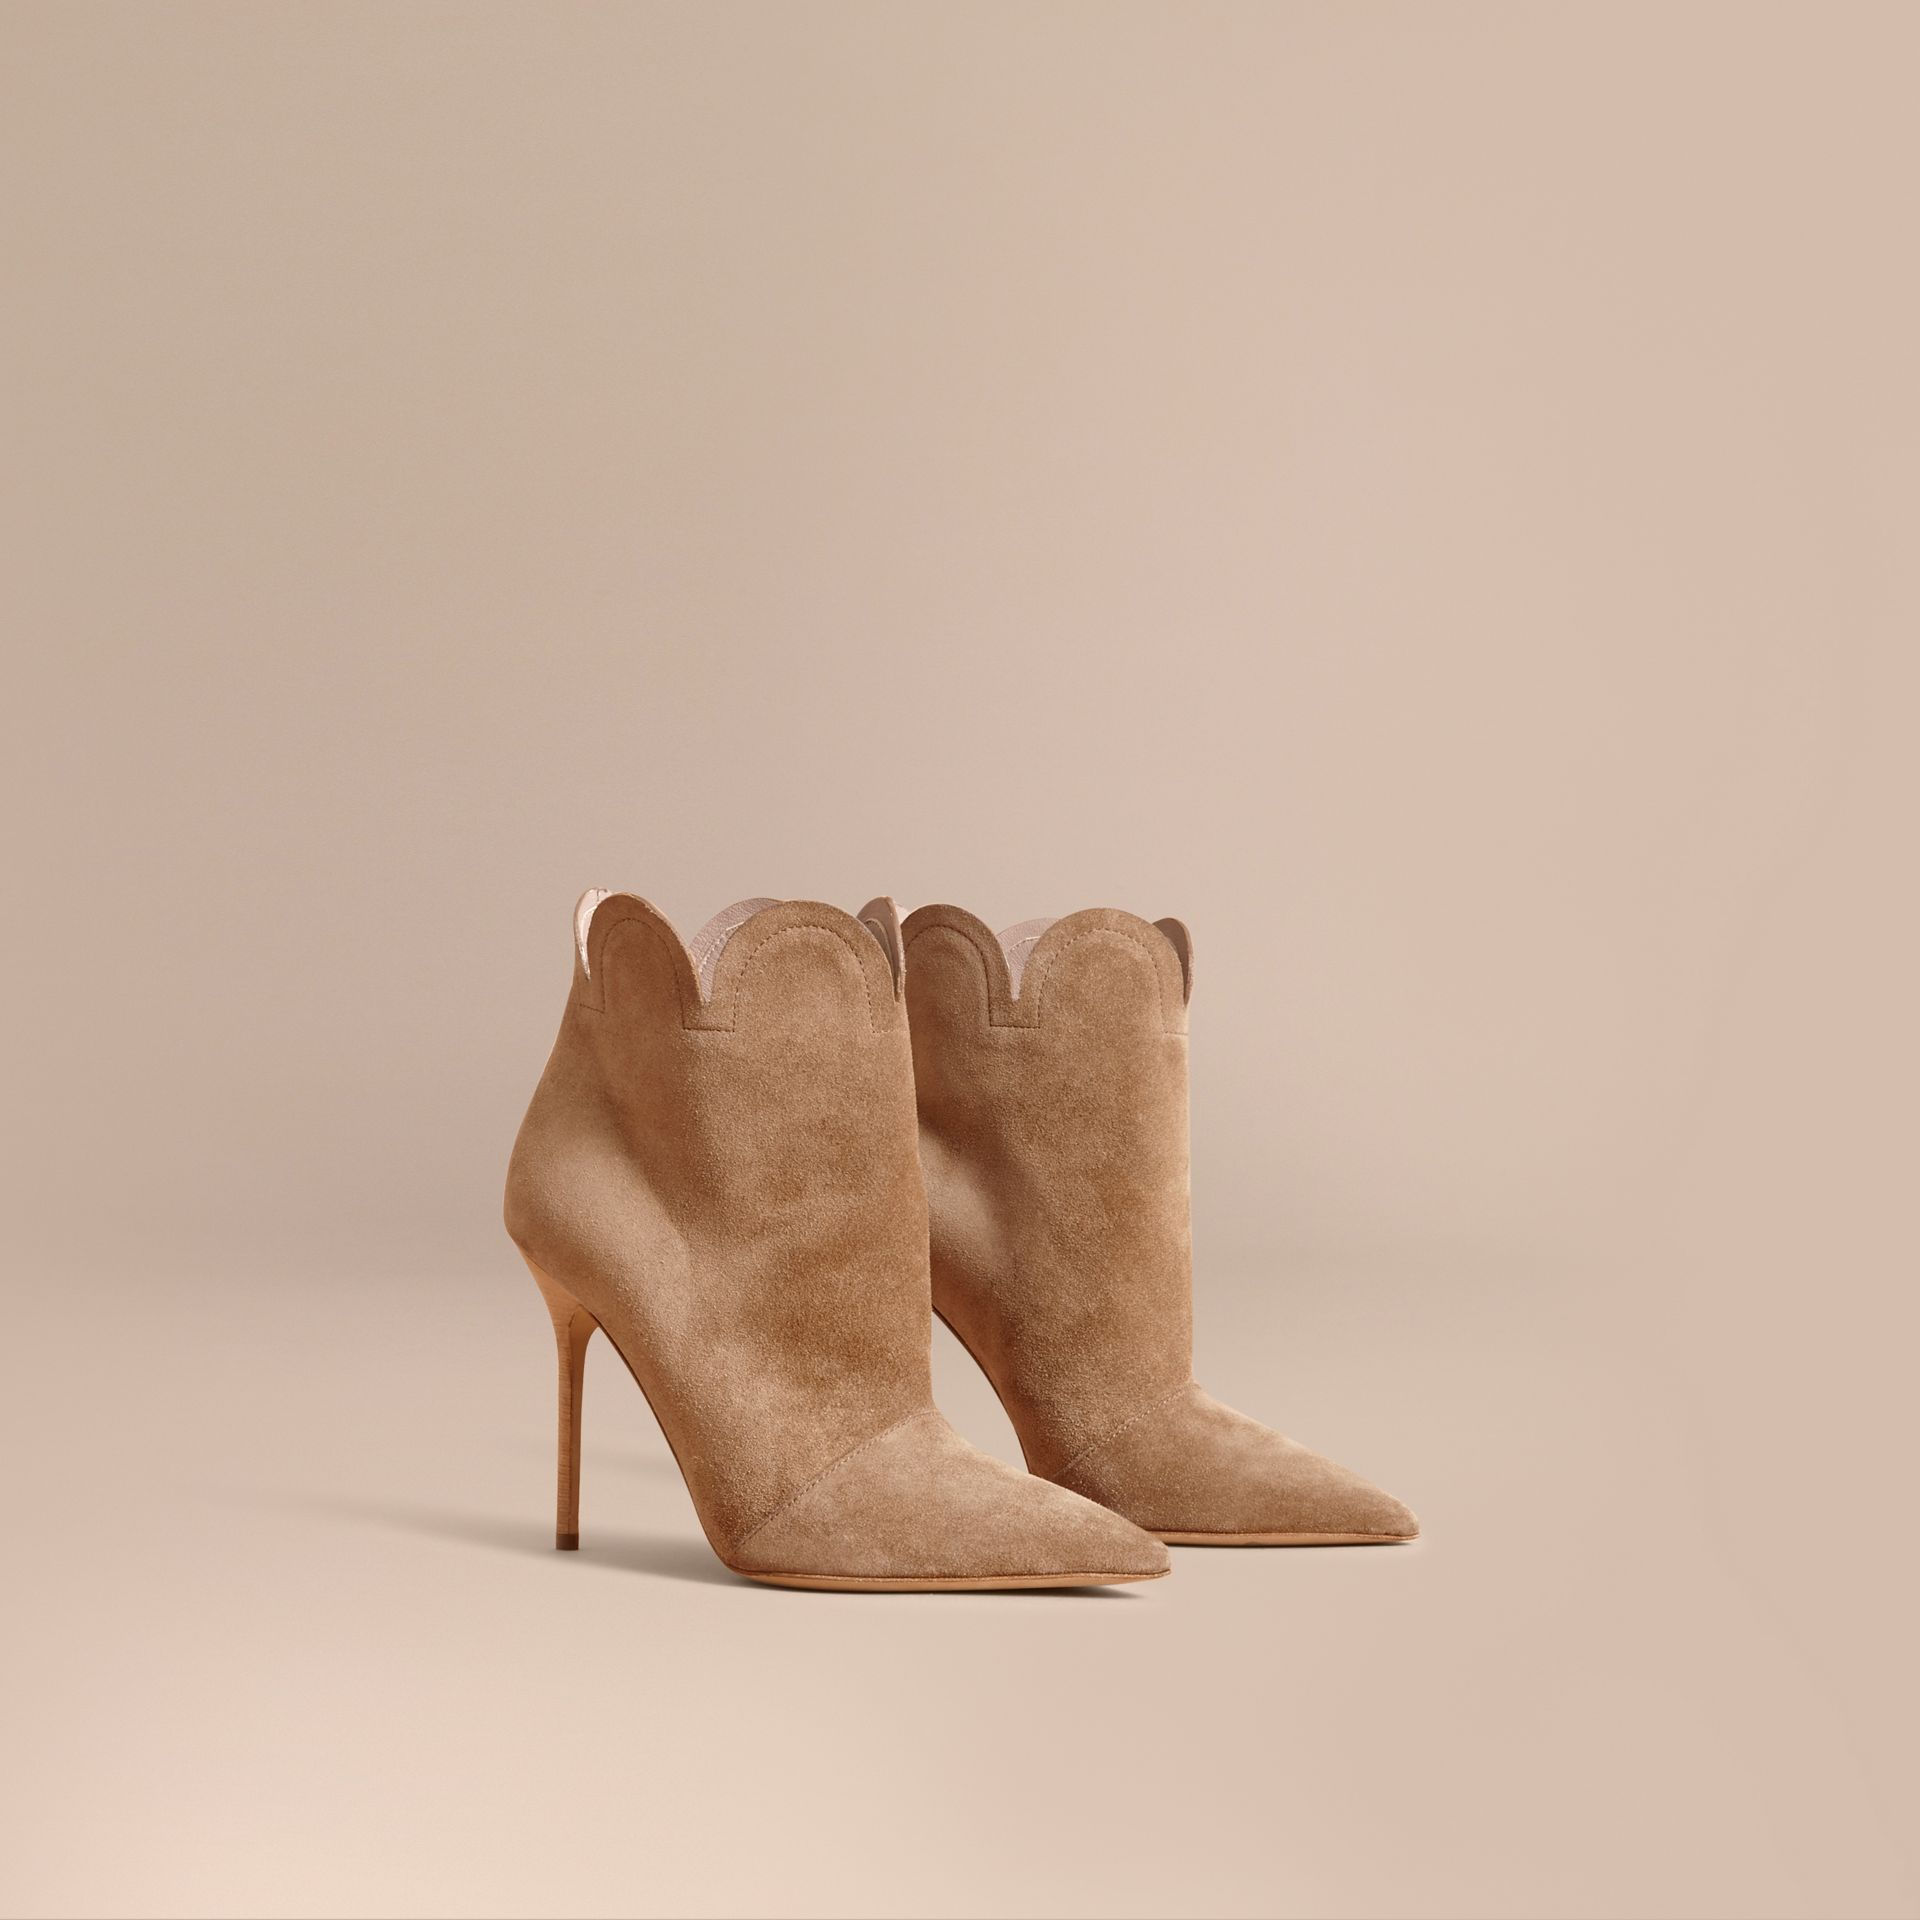 Scalloped Suede Ankle Boots in Sandstone - Women | Burberry Hong Kong - gallery image 1